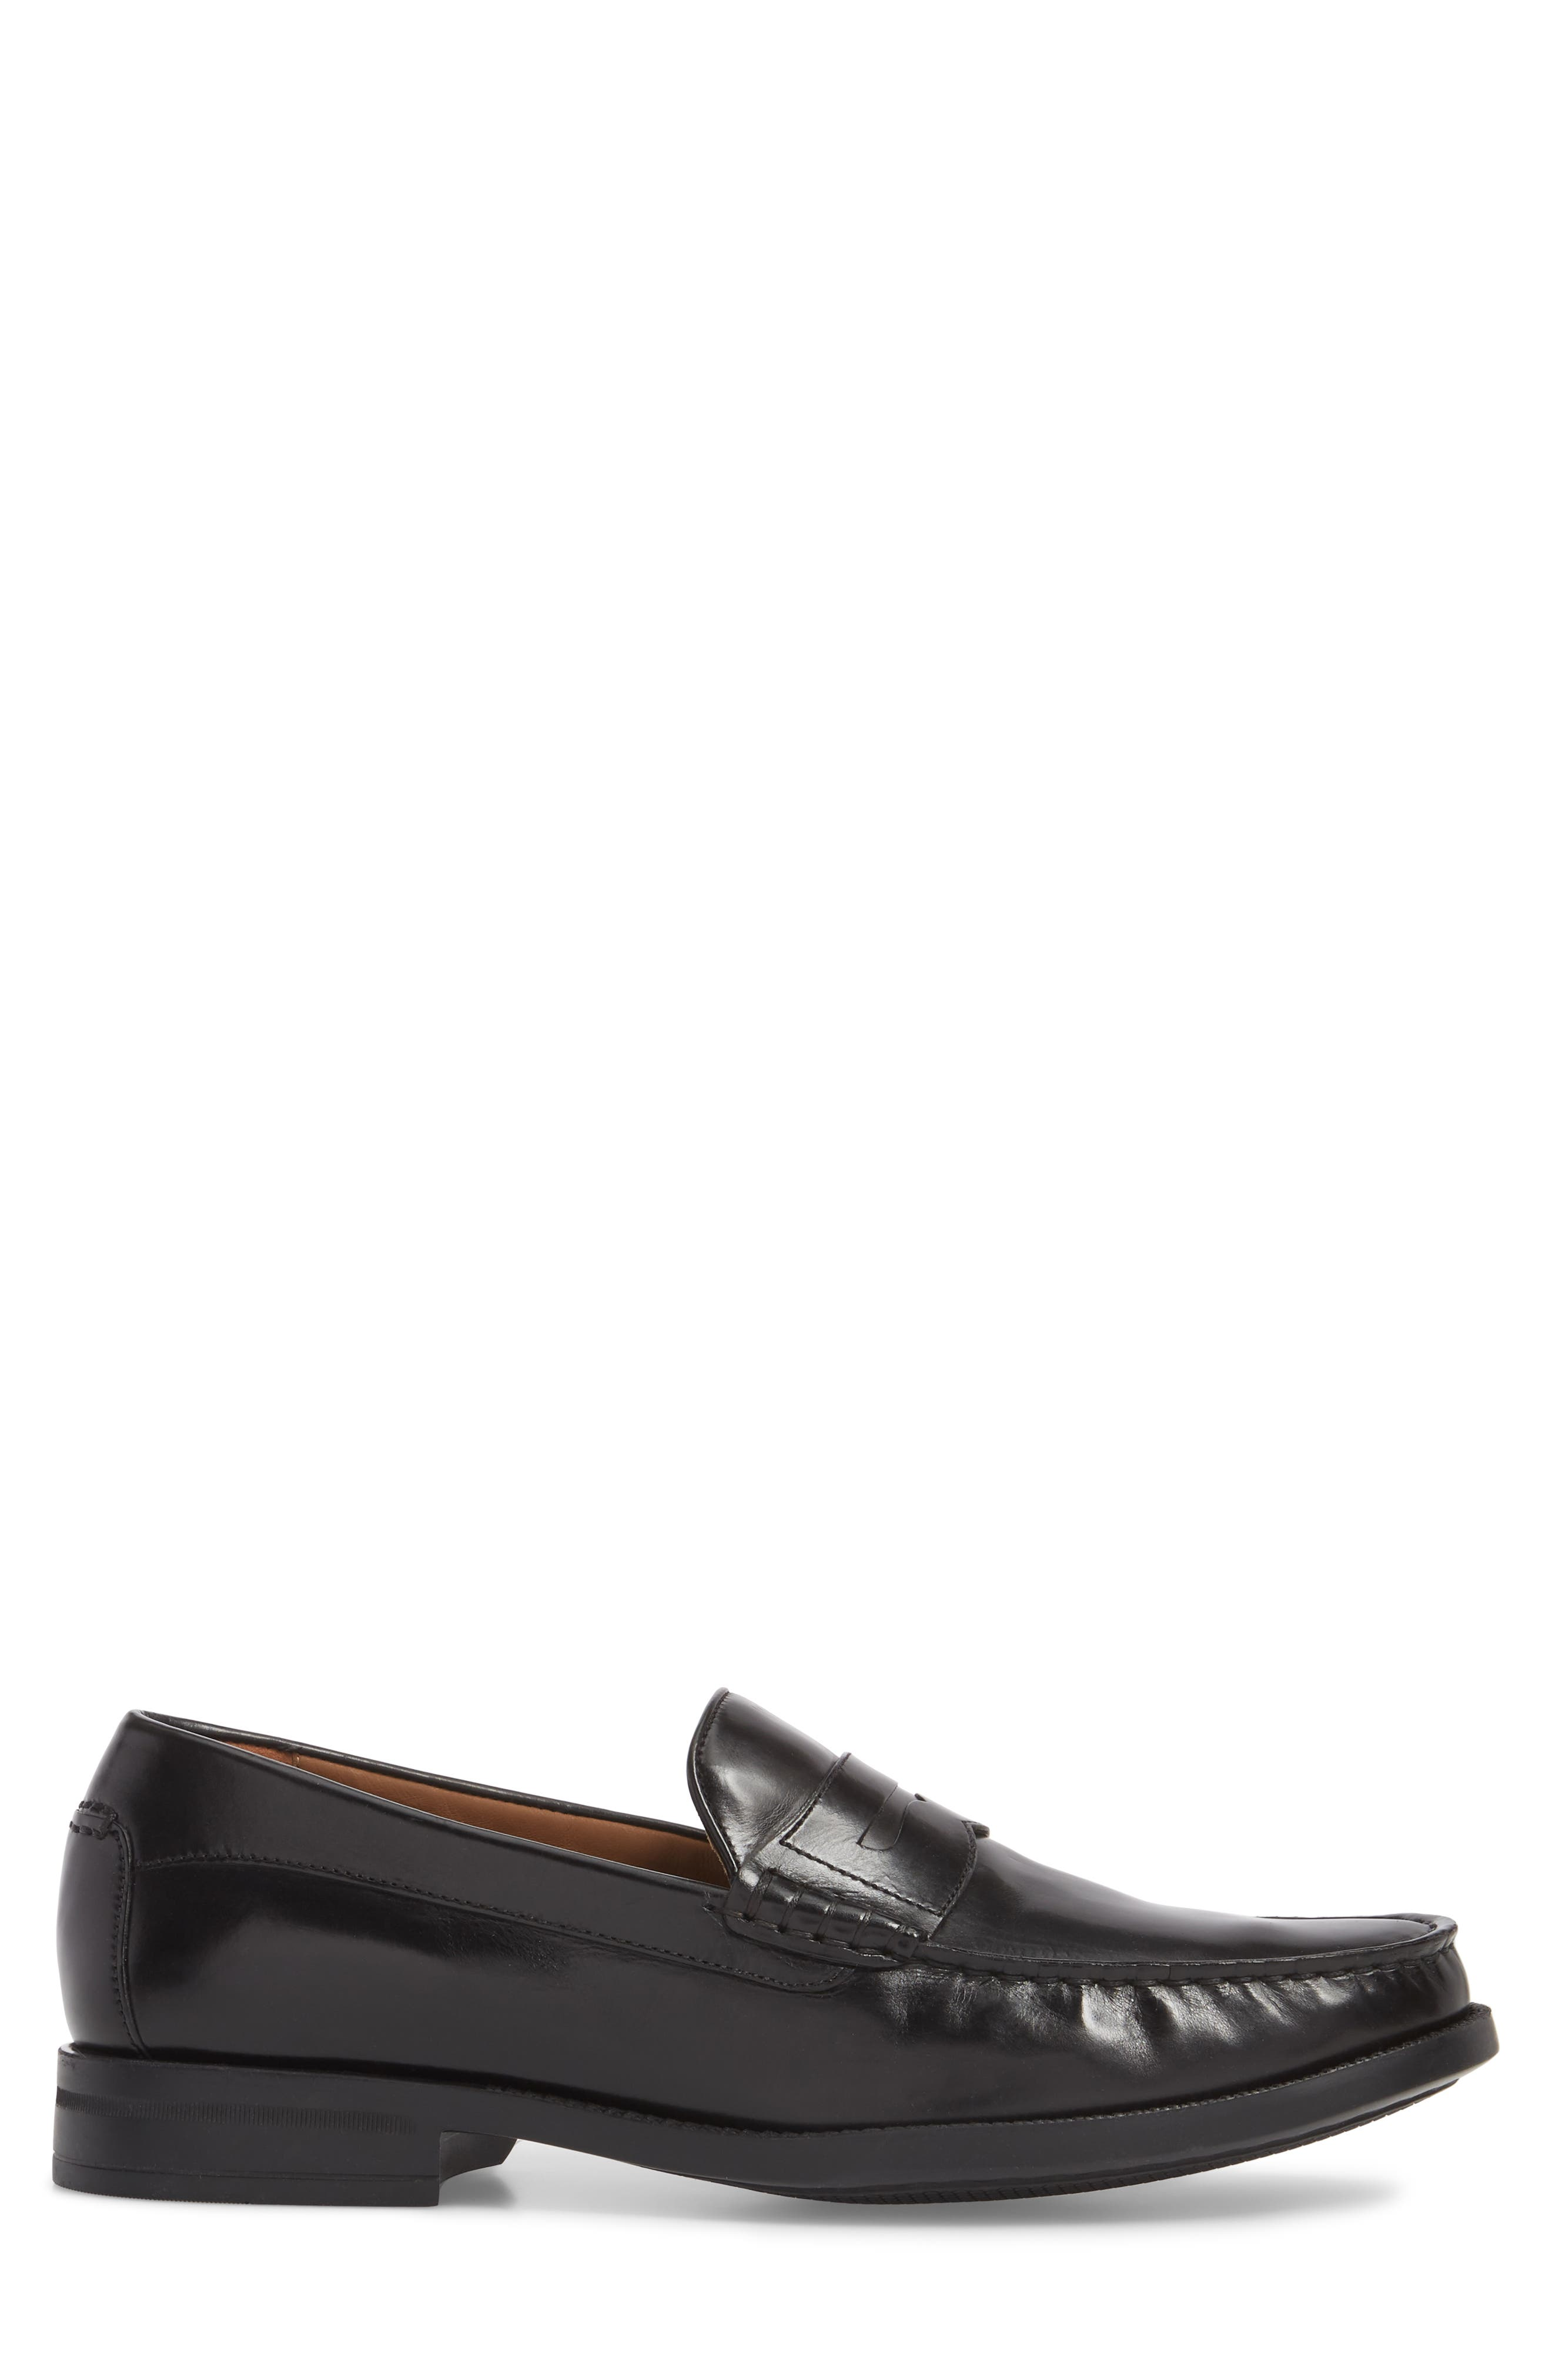 Chadwell Penny Loafer,                             Alternate thumbnail 3, color,                             BLACK LEATHER